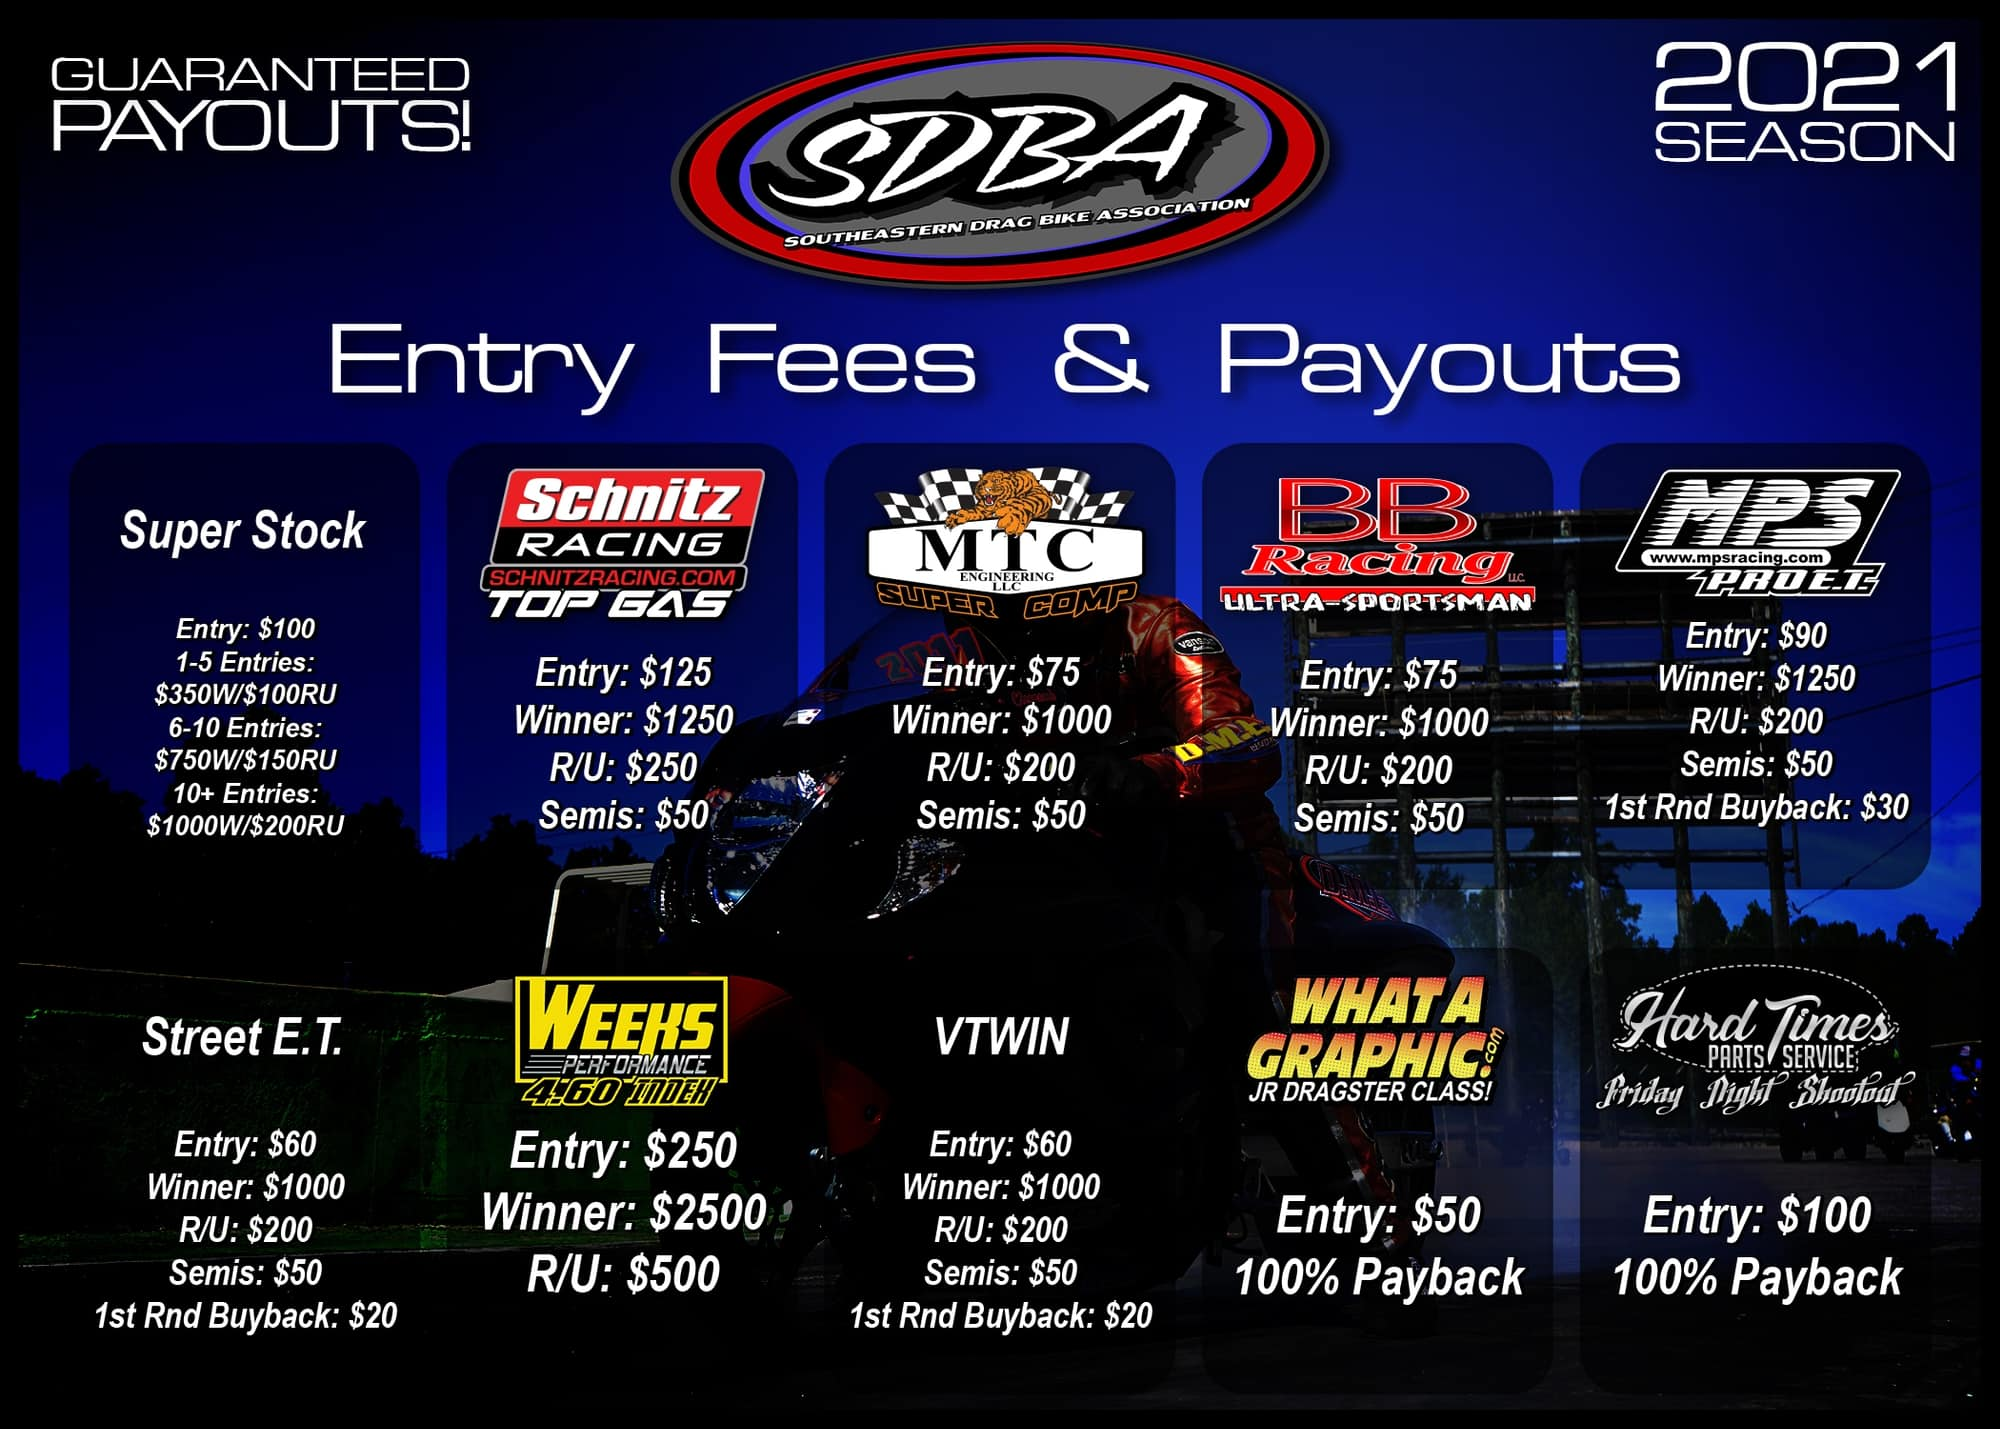 2021 SDBA Entry Fees & Payouts